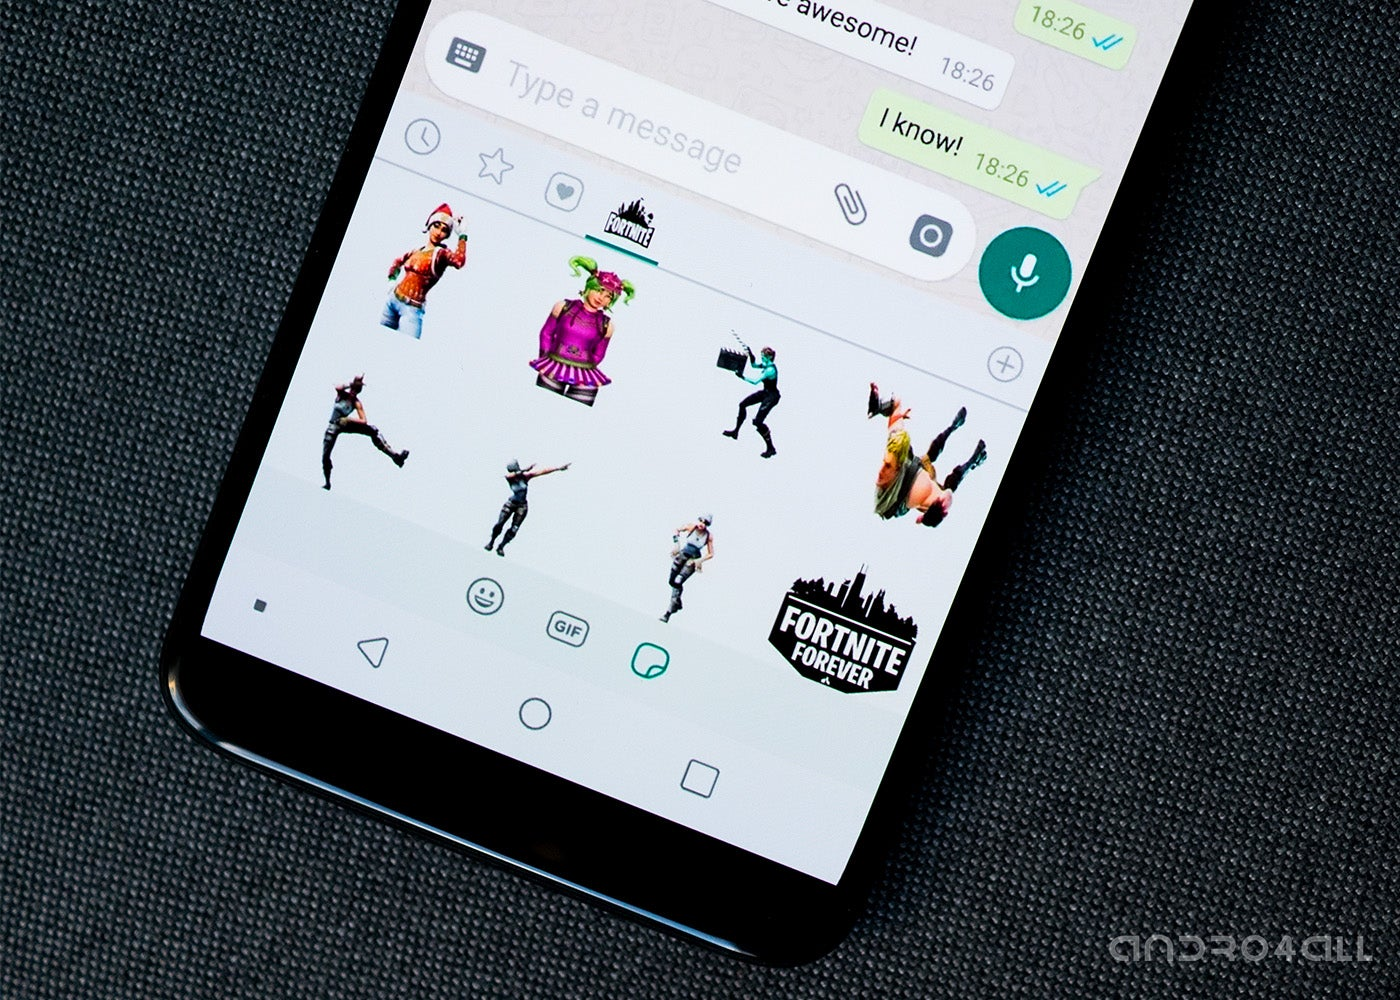 You can now download the stickers individually on WhatsApp